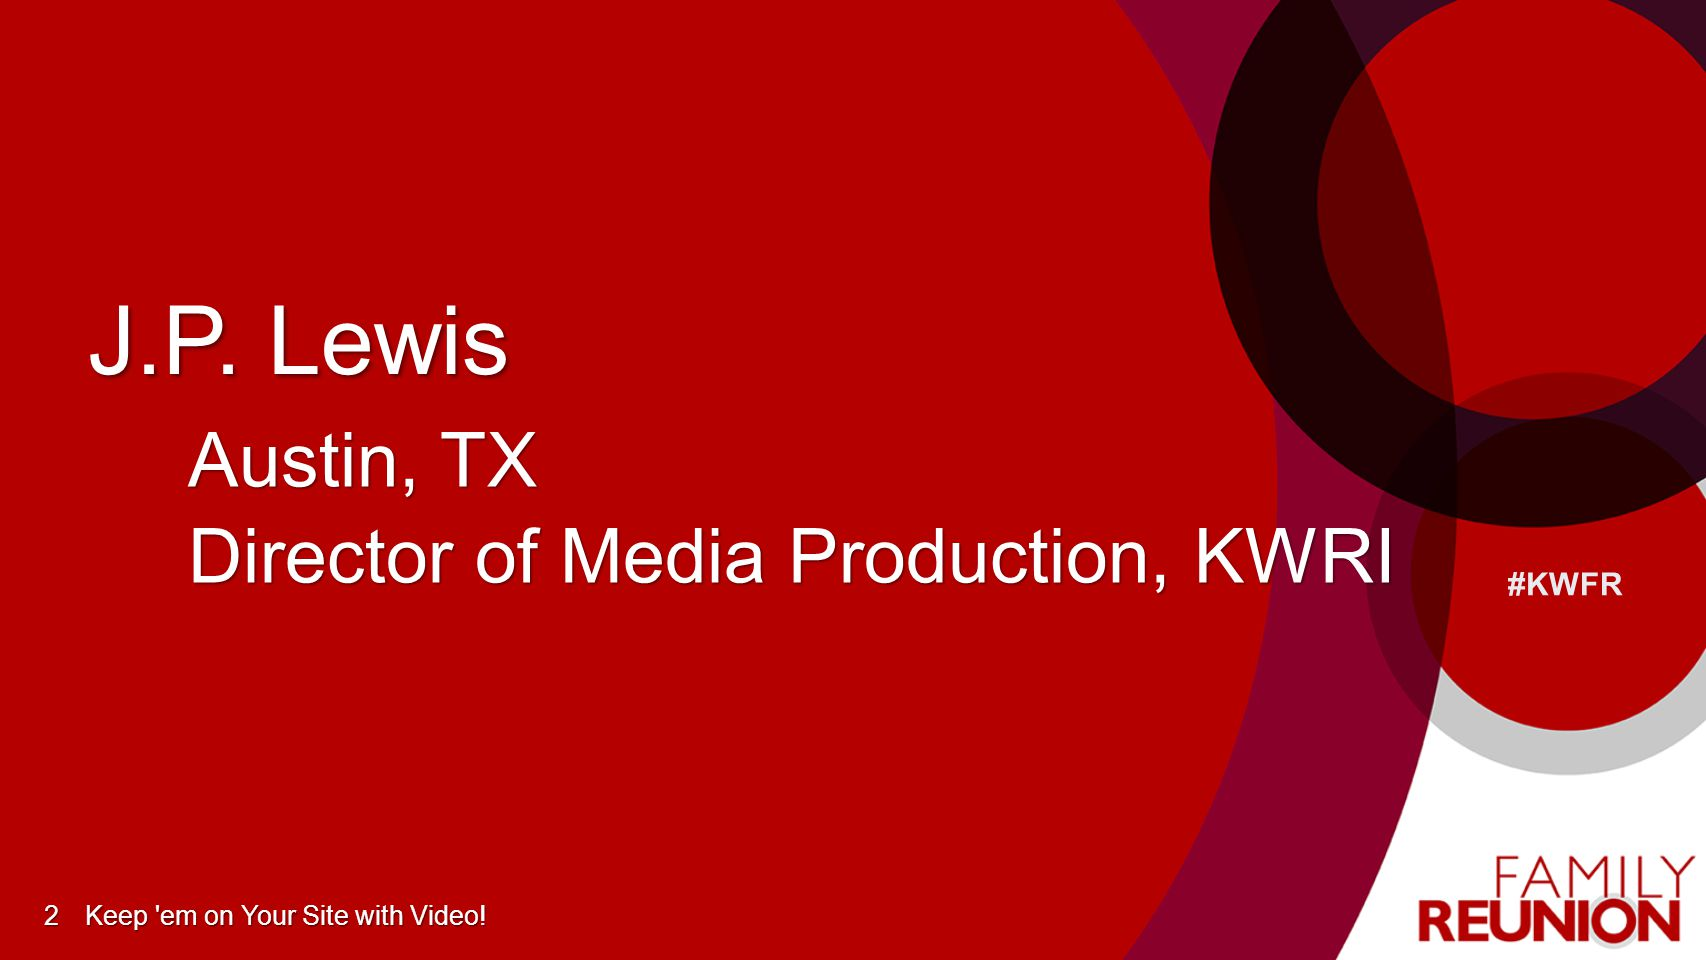 #KWFR J.P. Lewis Austin, TX Director of Media Production, KWRI Keep 'em on Your Site with Video!2